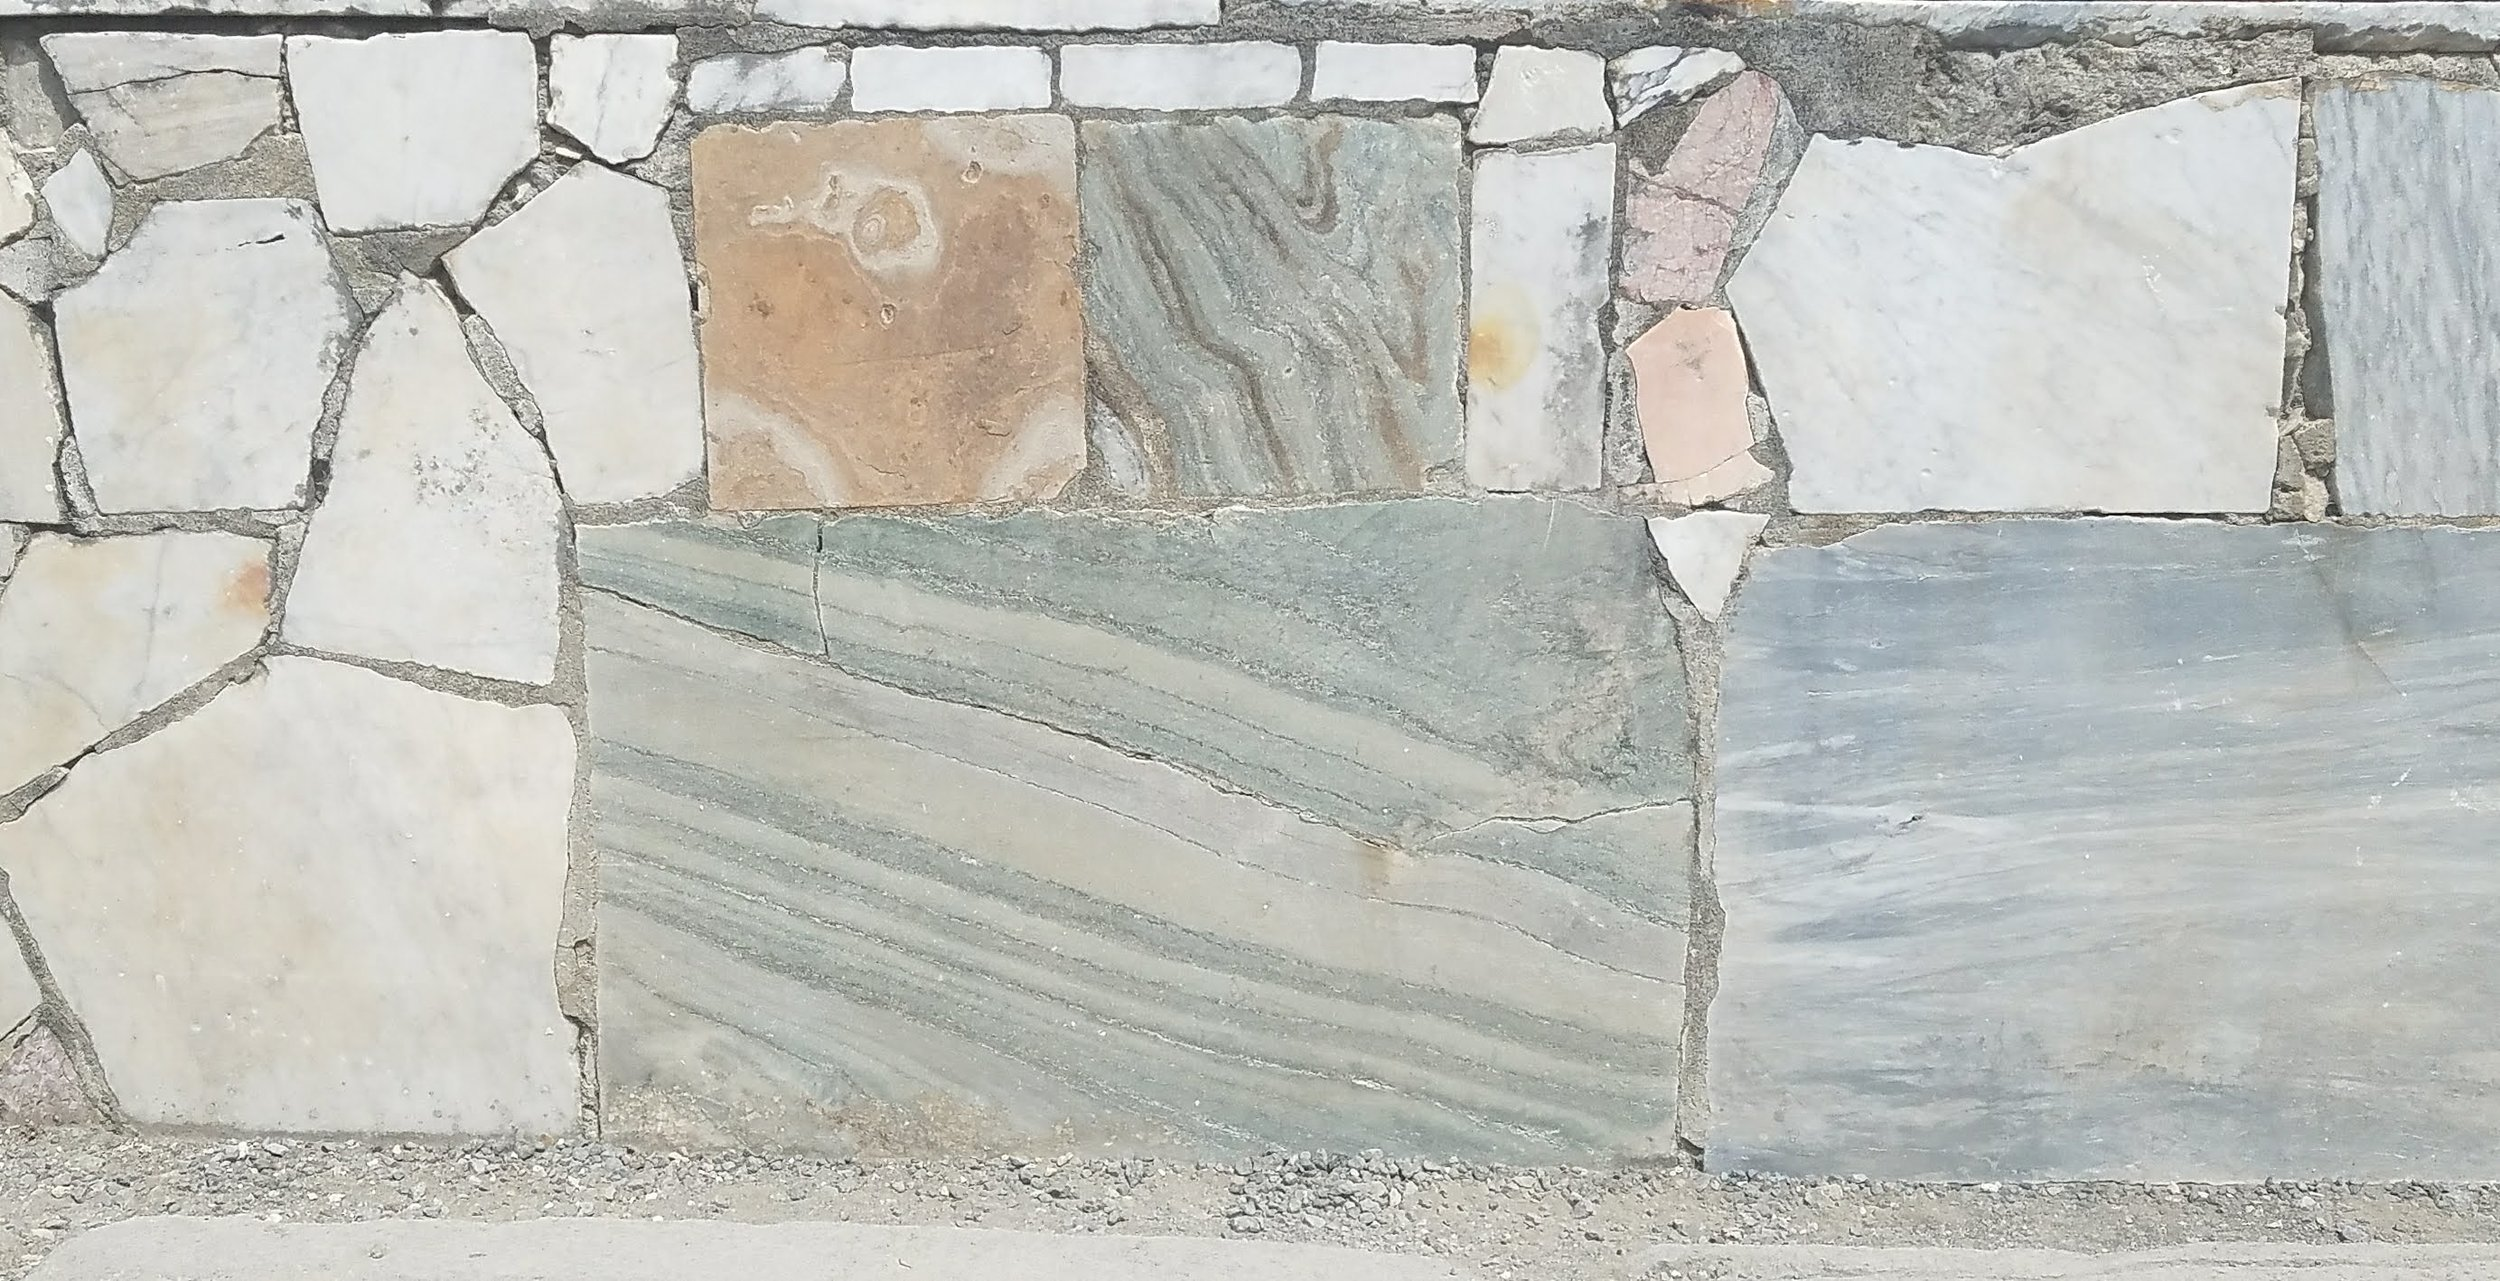 Detail marble wall in the ancient city of Pompeii.